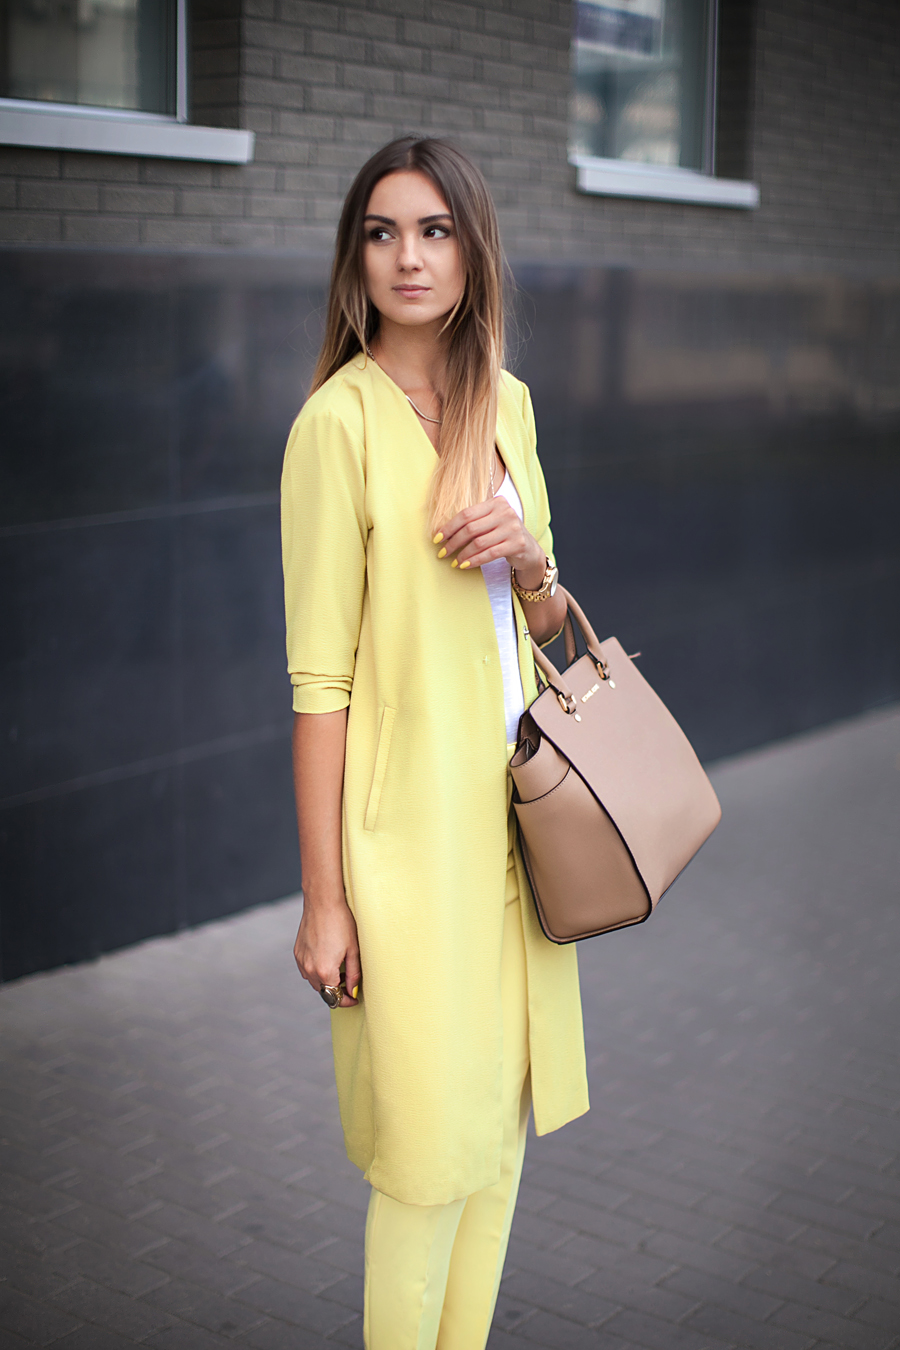 nika-huk-fashion-blogger-ukraine-style-outfit-look-of-the-day-michael-kors-bags